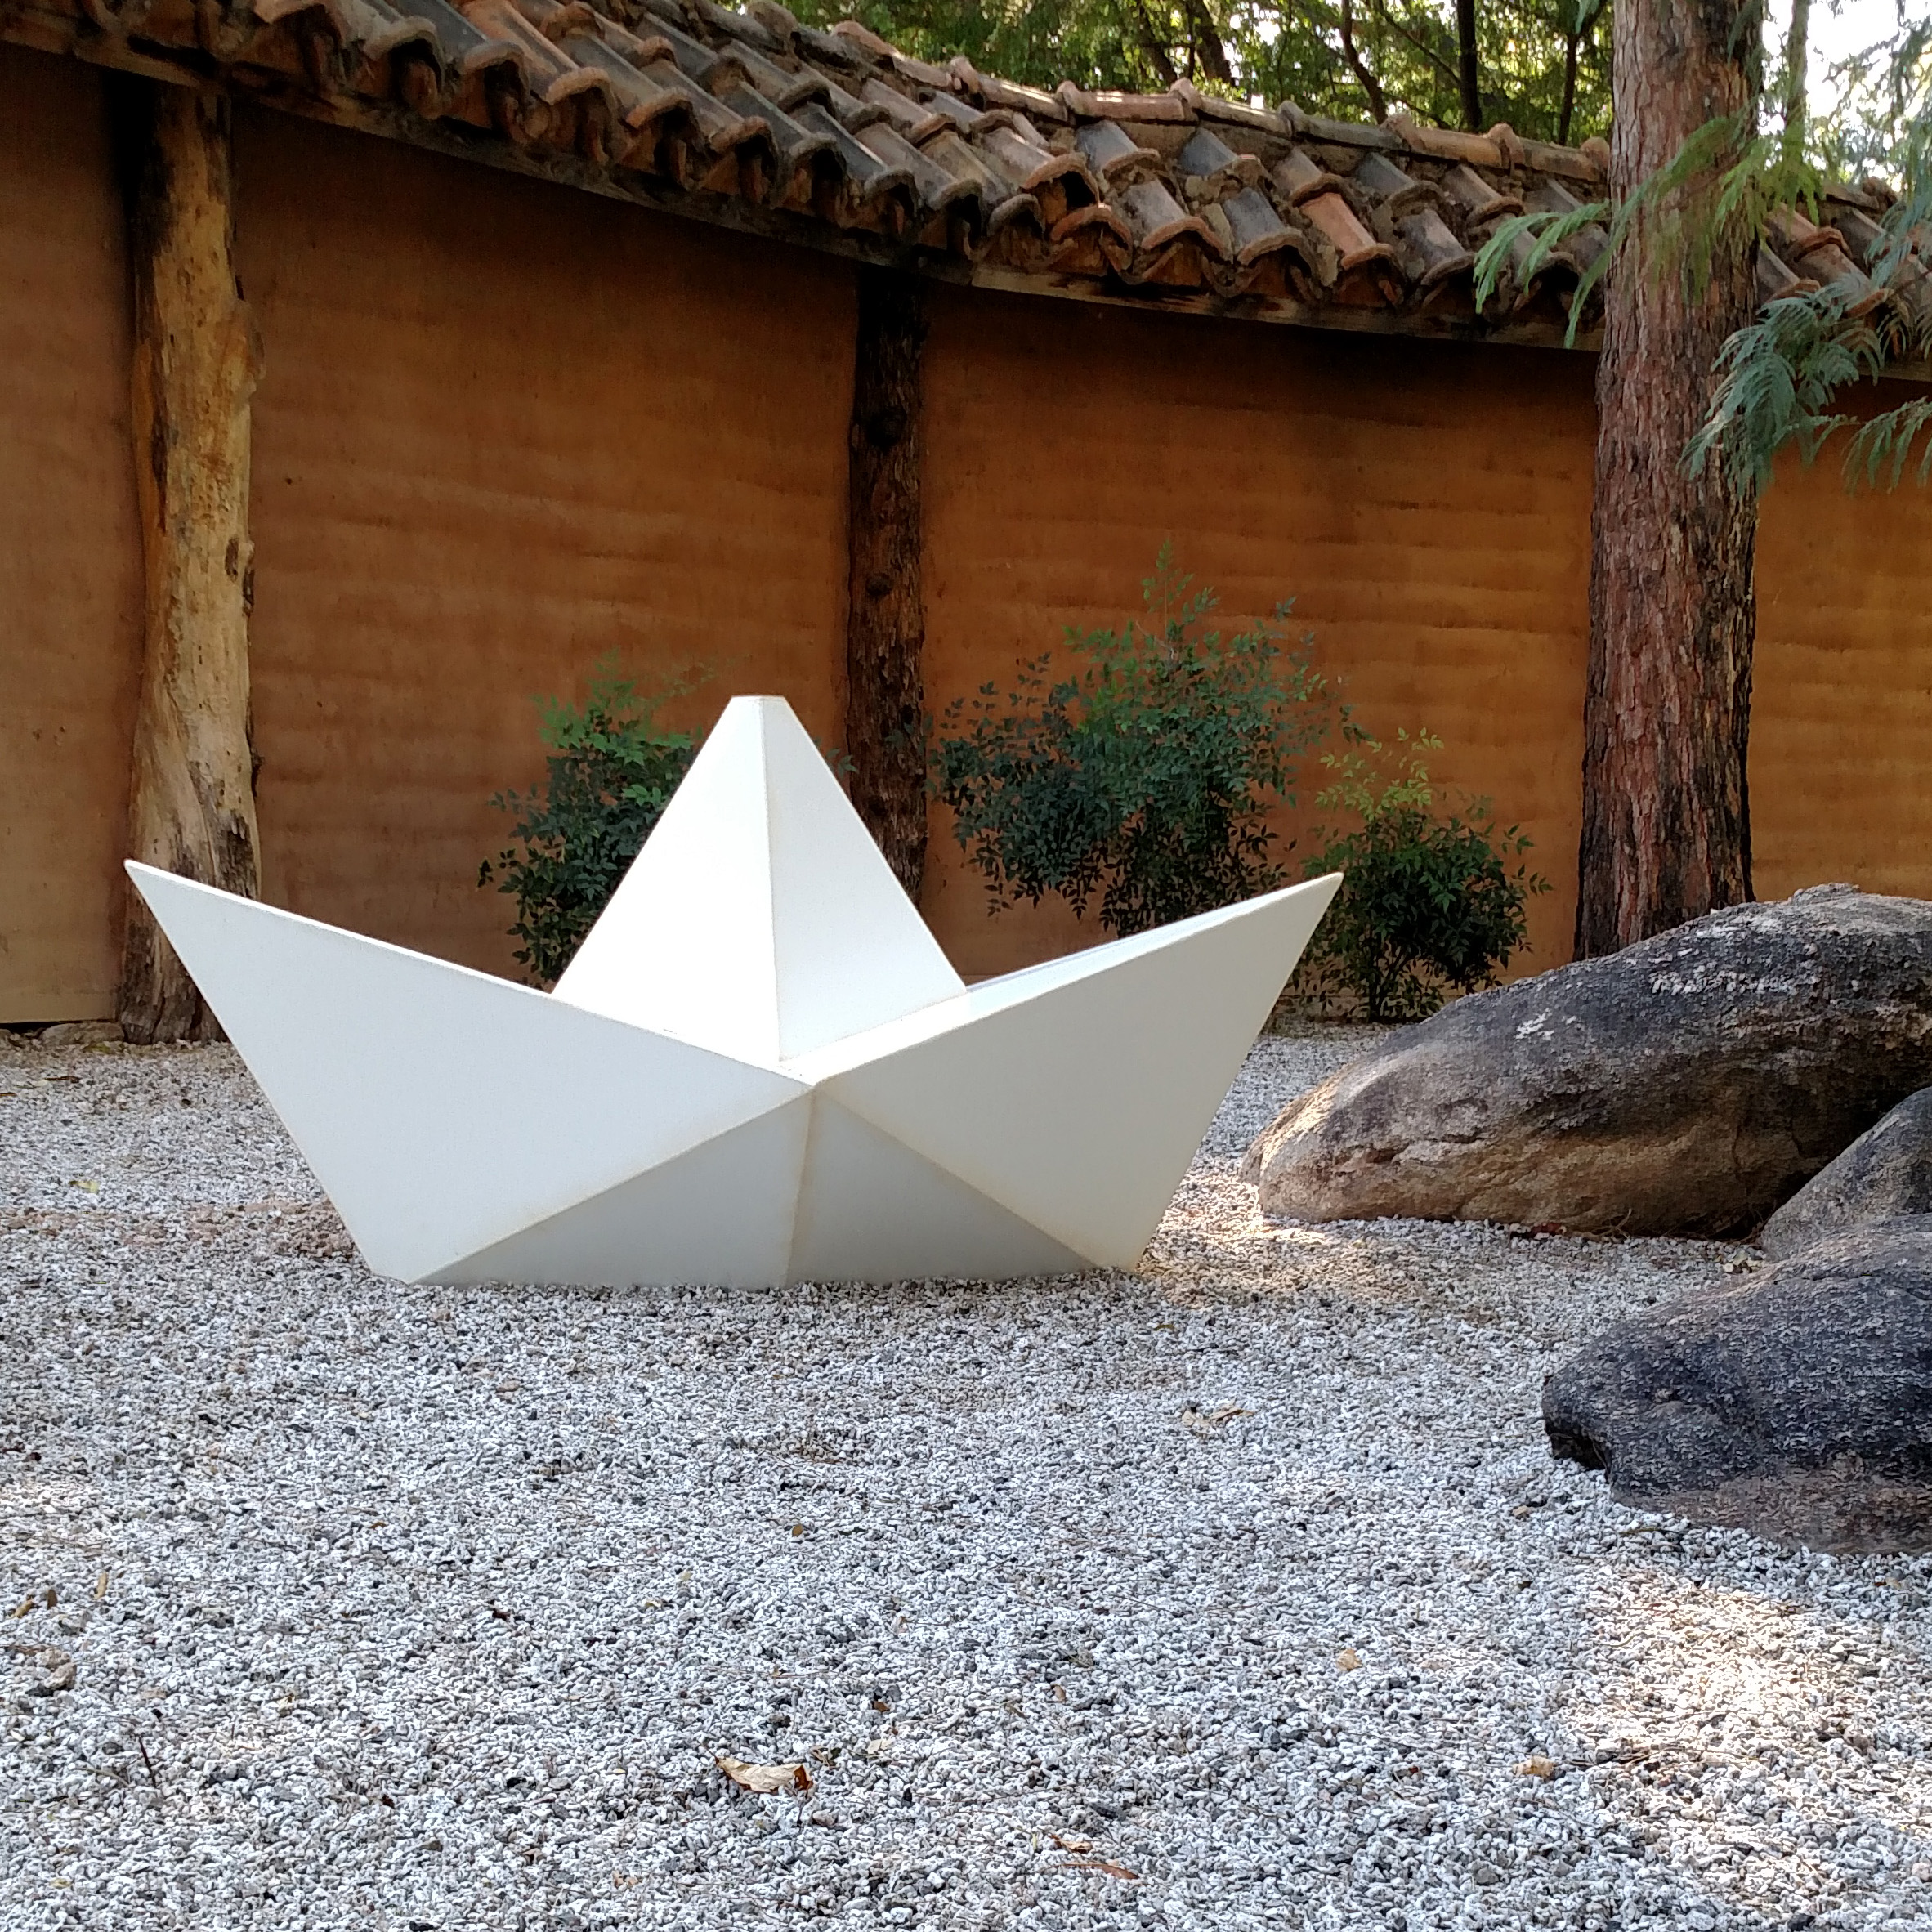 Cafe Botanica Celebrates Origami in the Garden2!